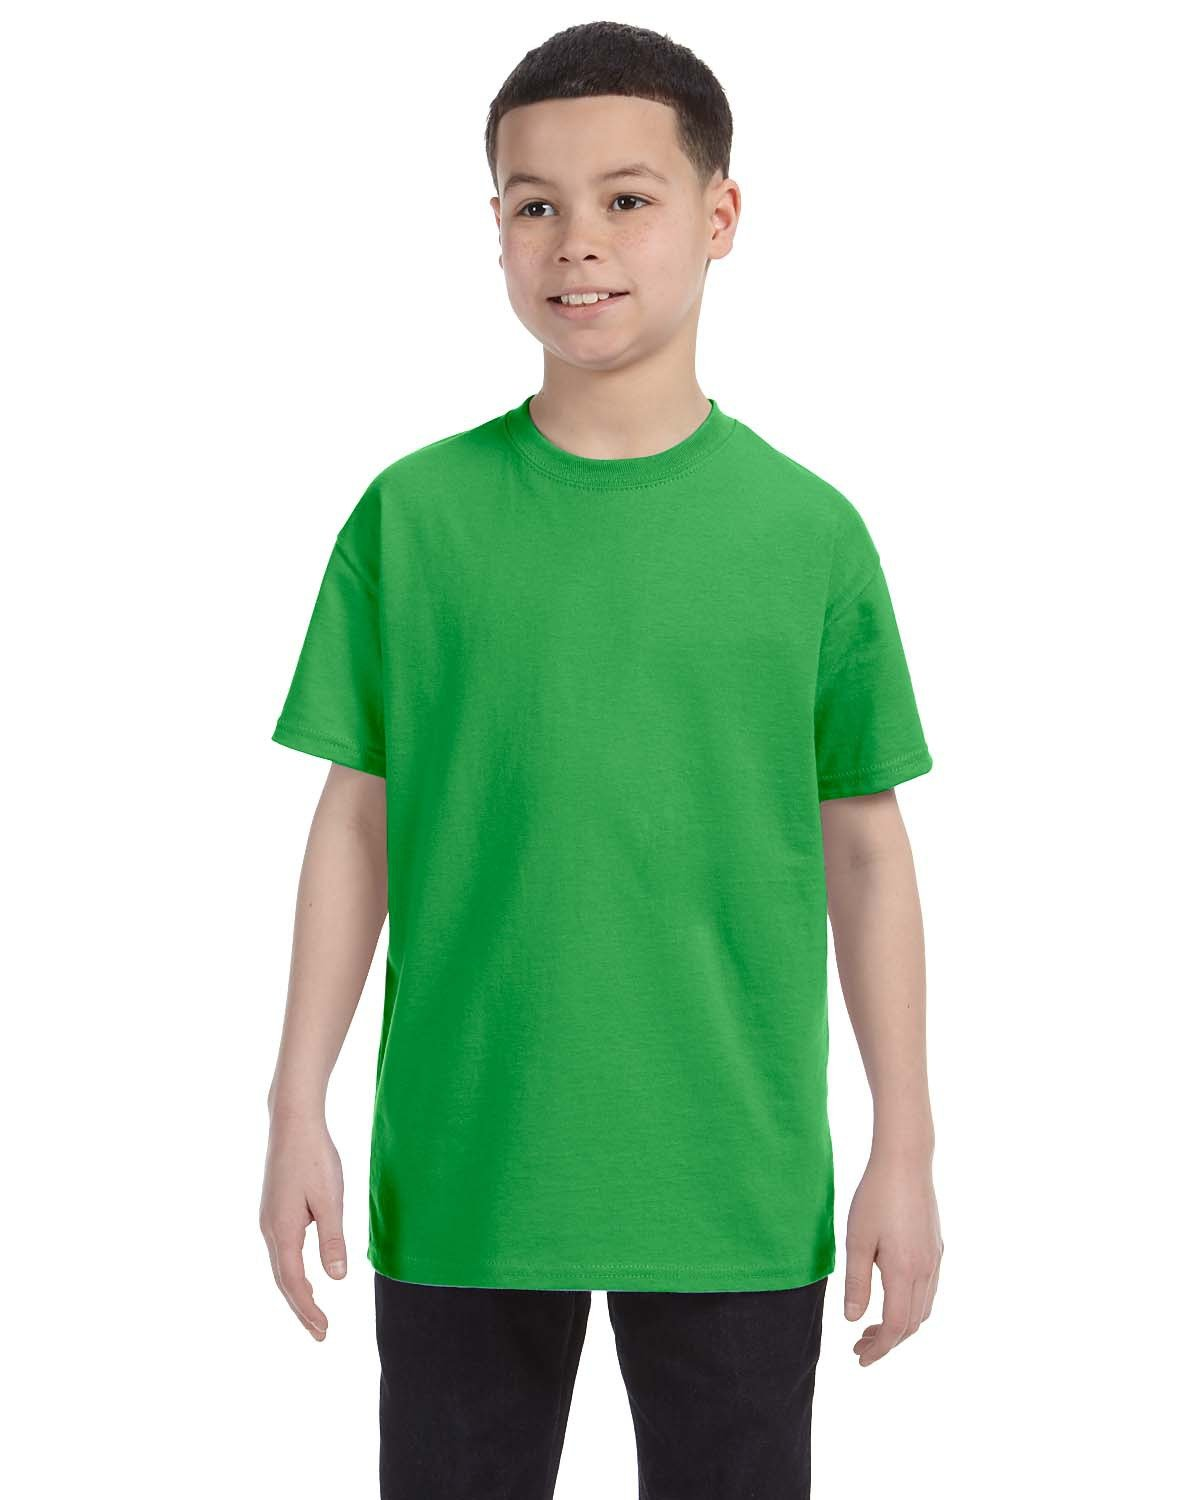 Hanes Youth Authentic-T T-Shirt SHAMROCK GREEN